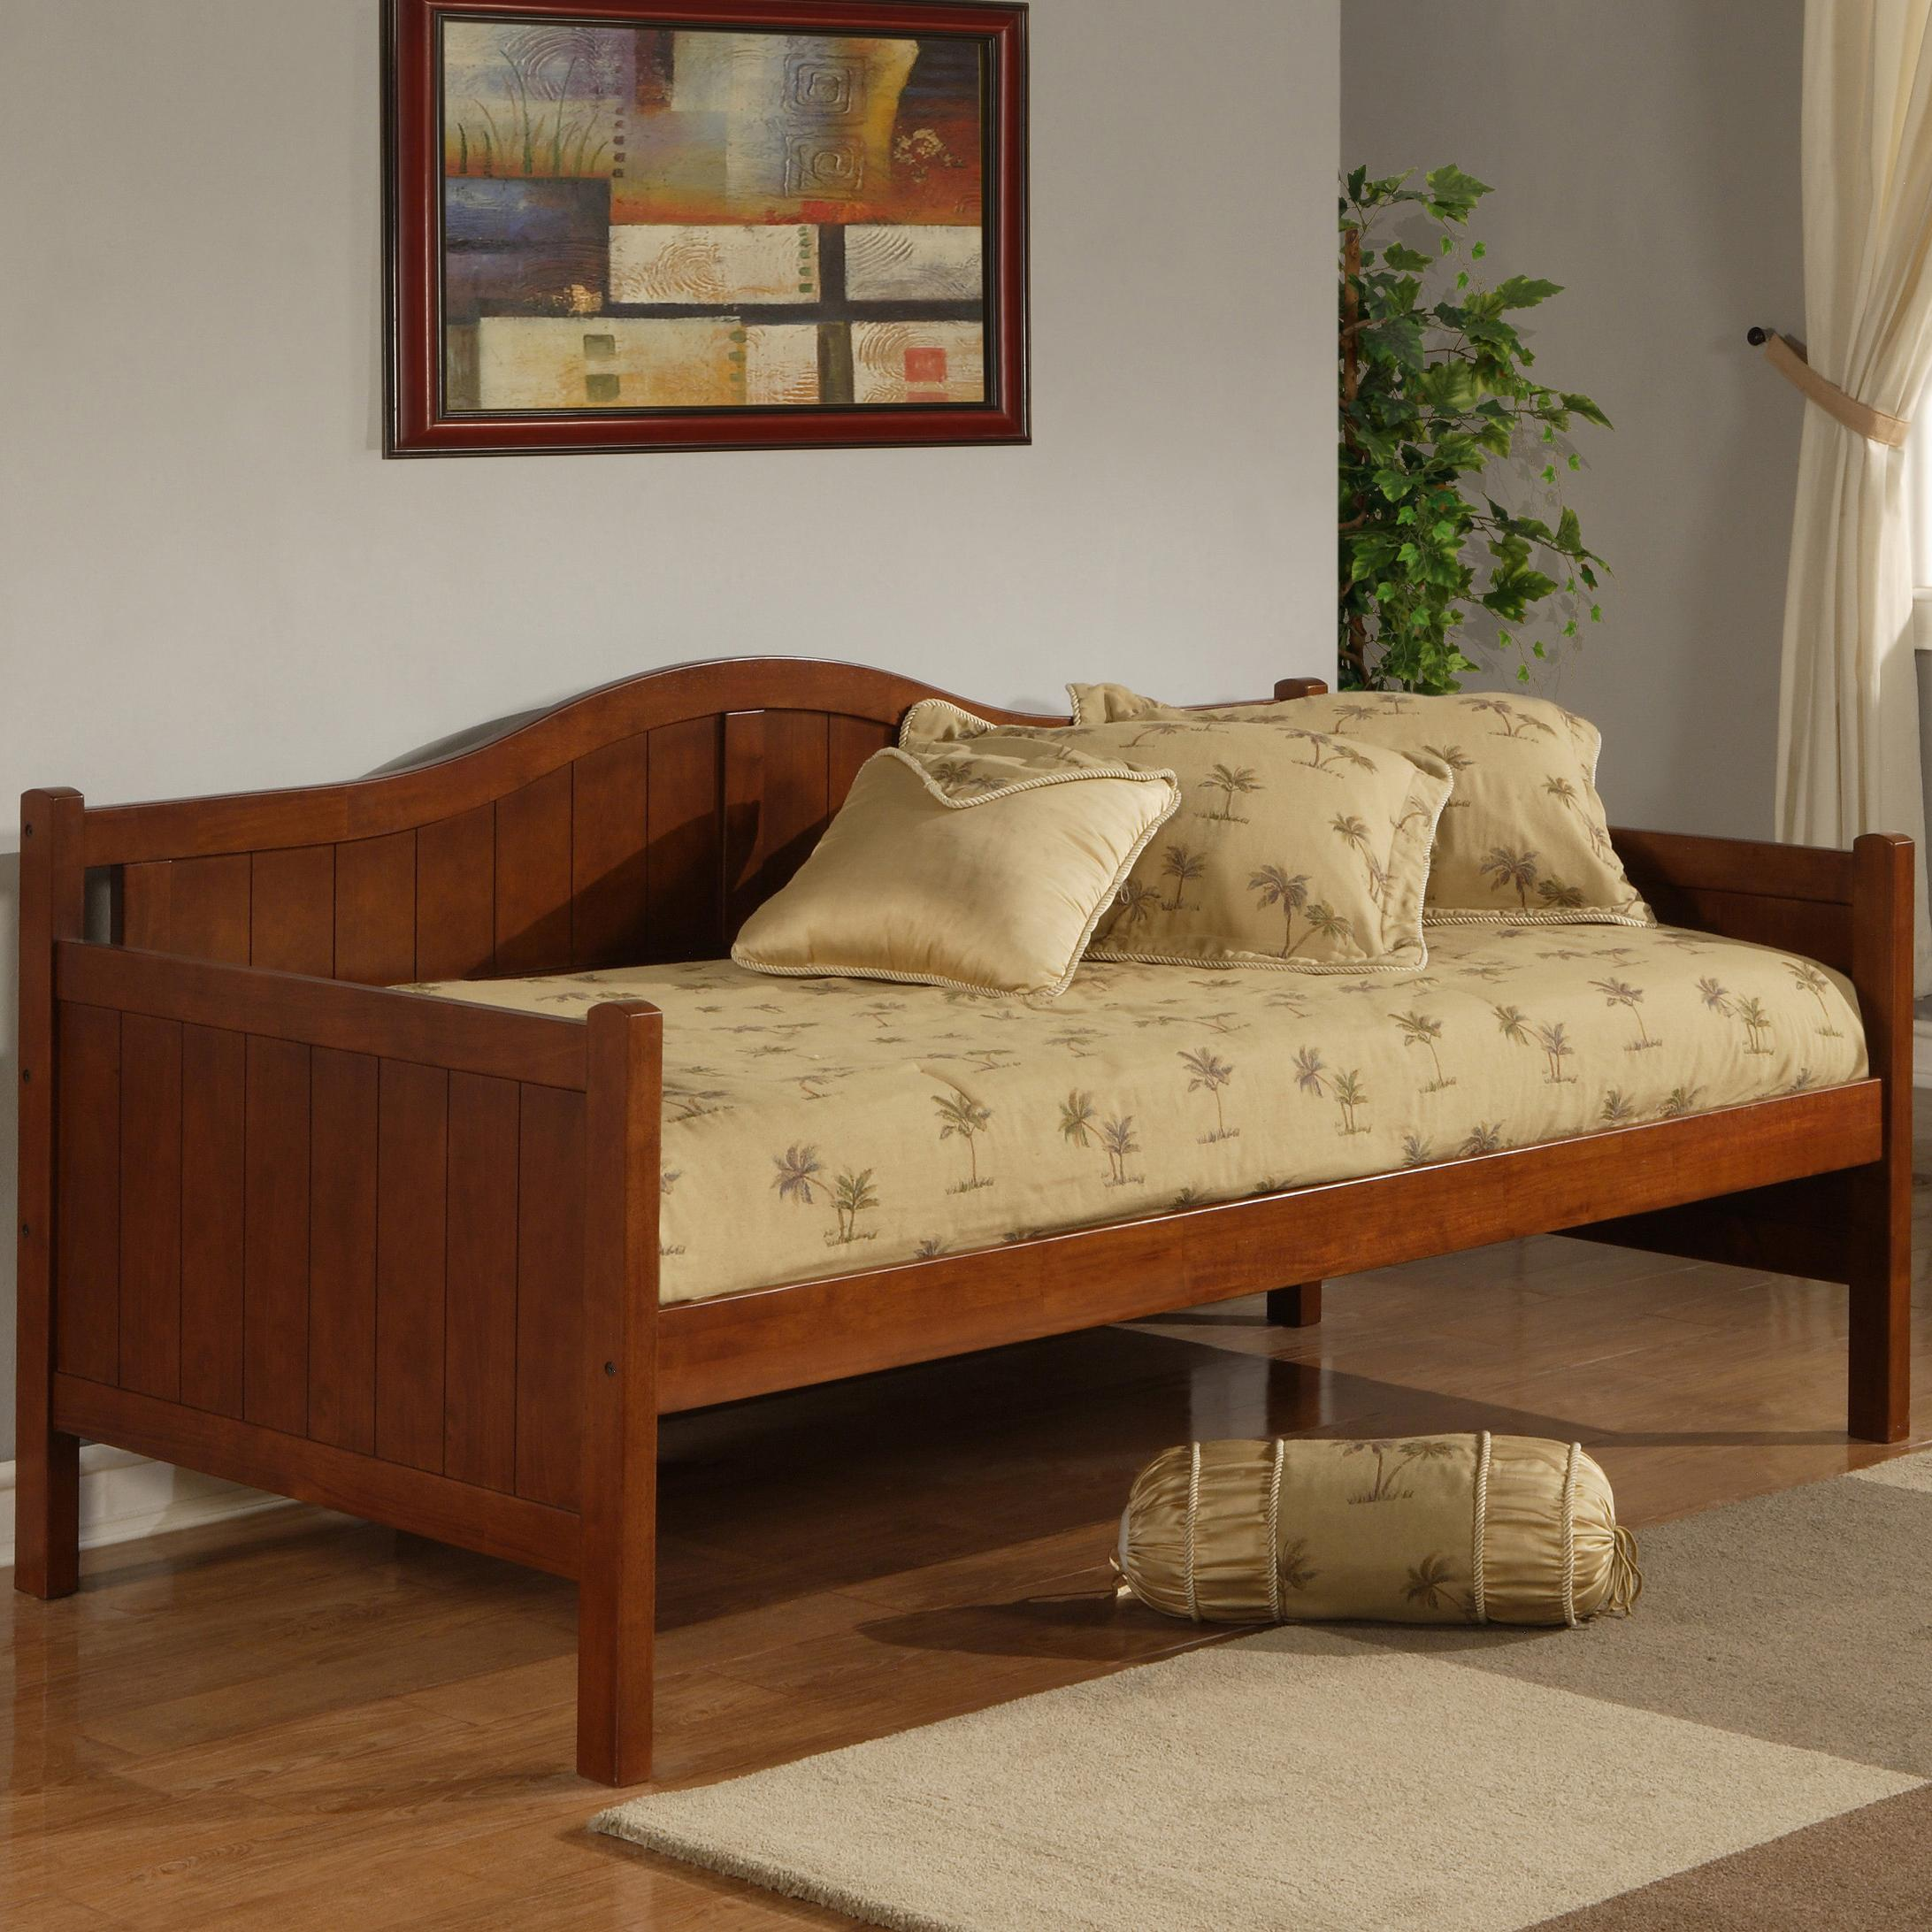 Daybeds Twin Staci Daybed at Ruby Gordon Home